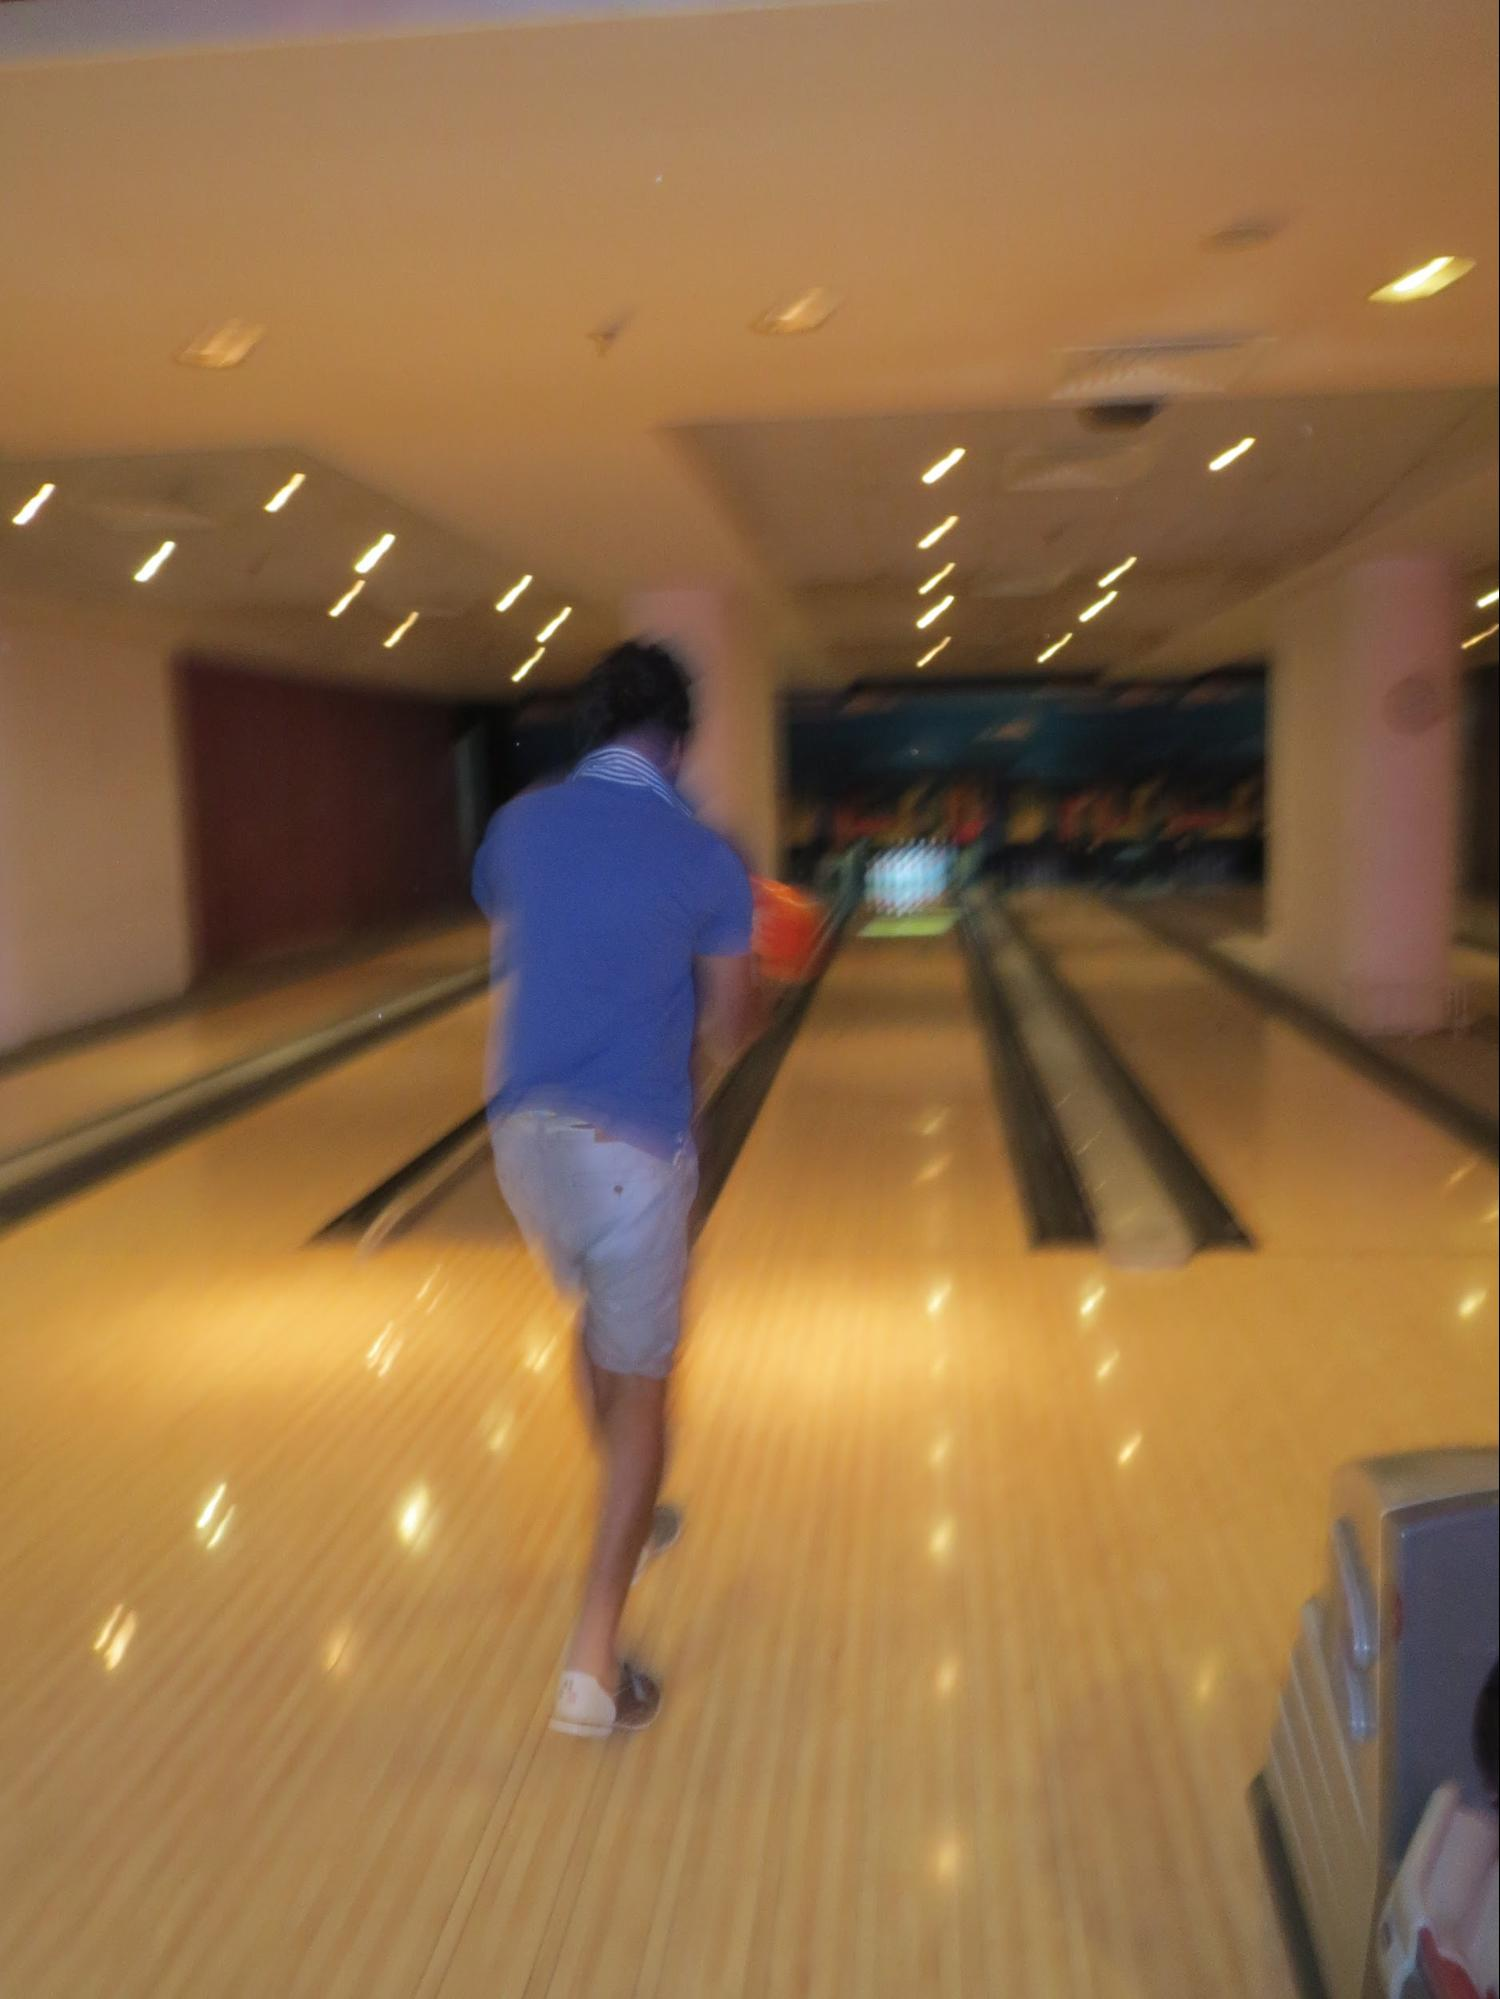 Kempinski Hotel, Ajman Review - Played Bowling - Games included in our package